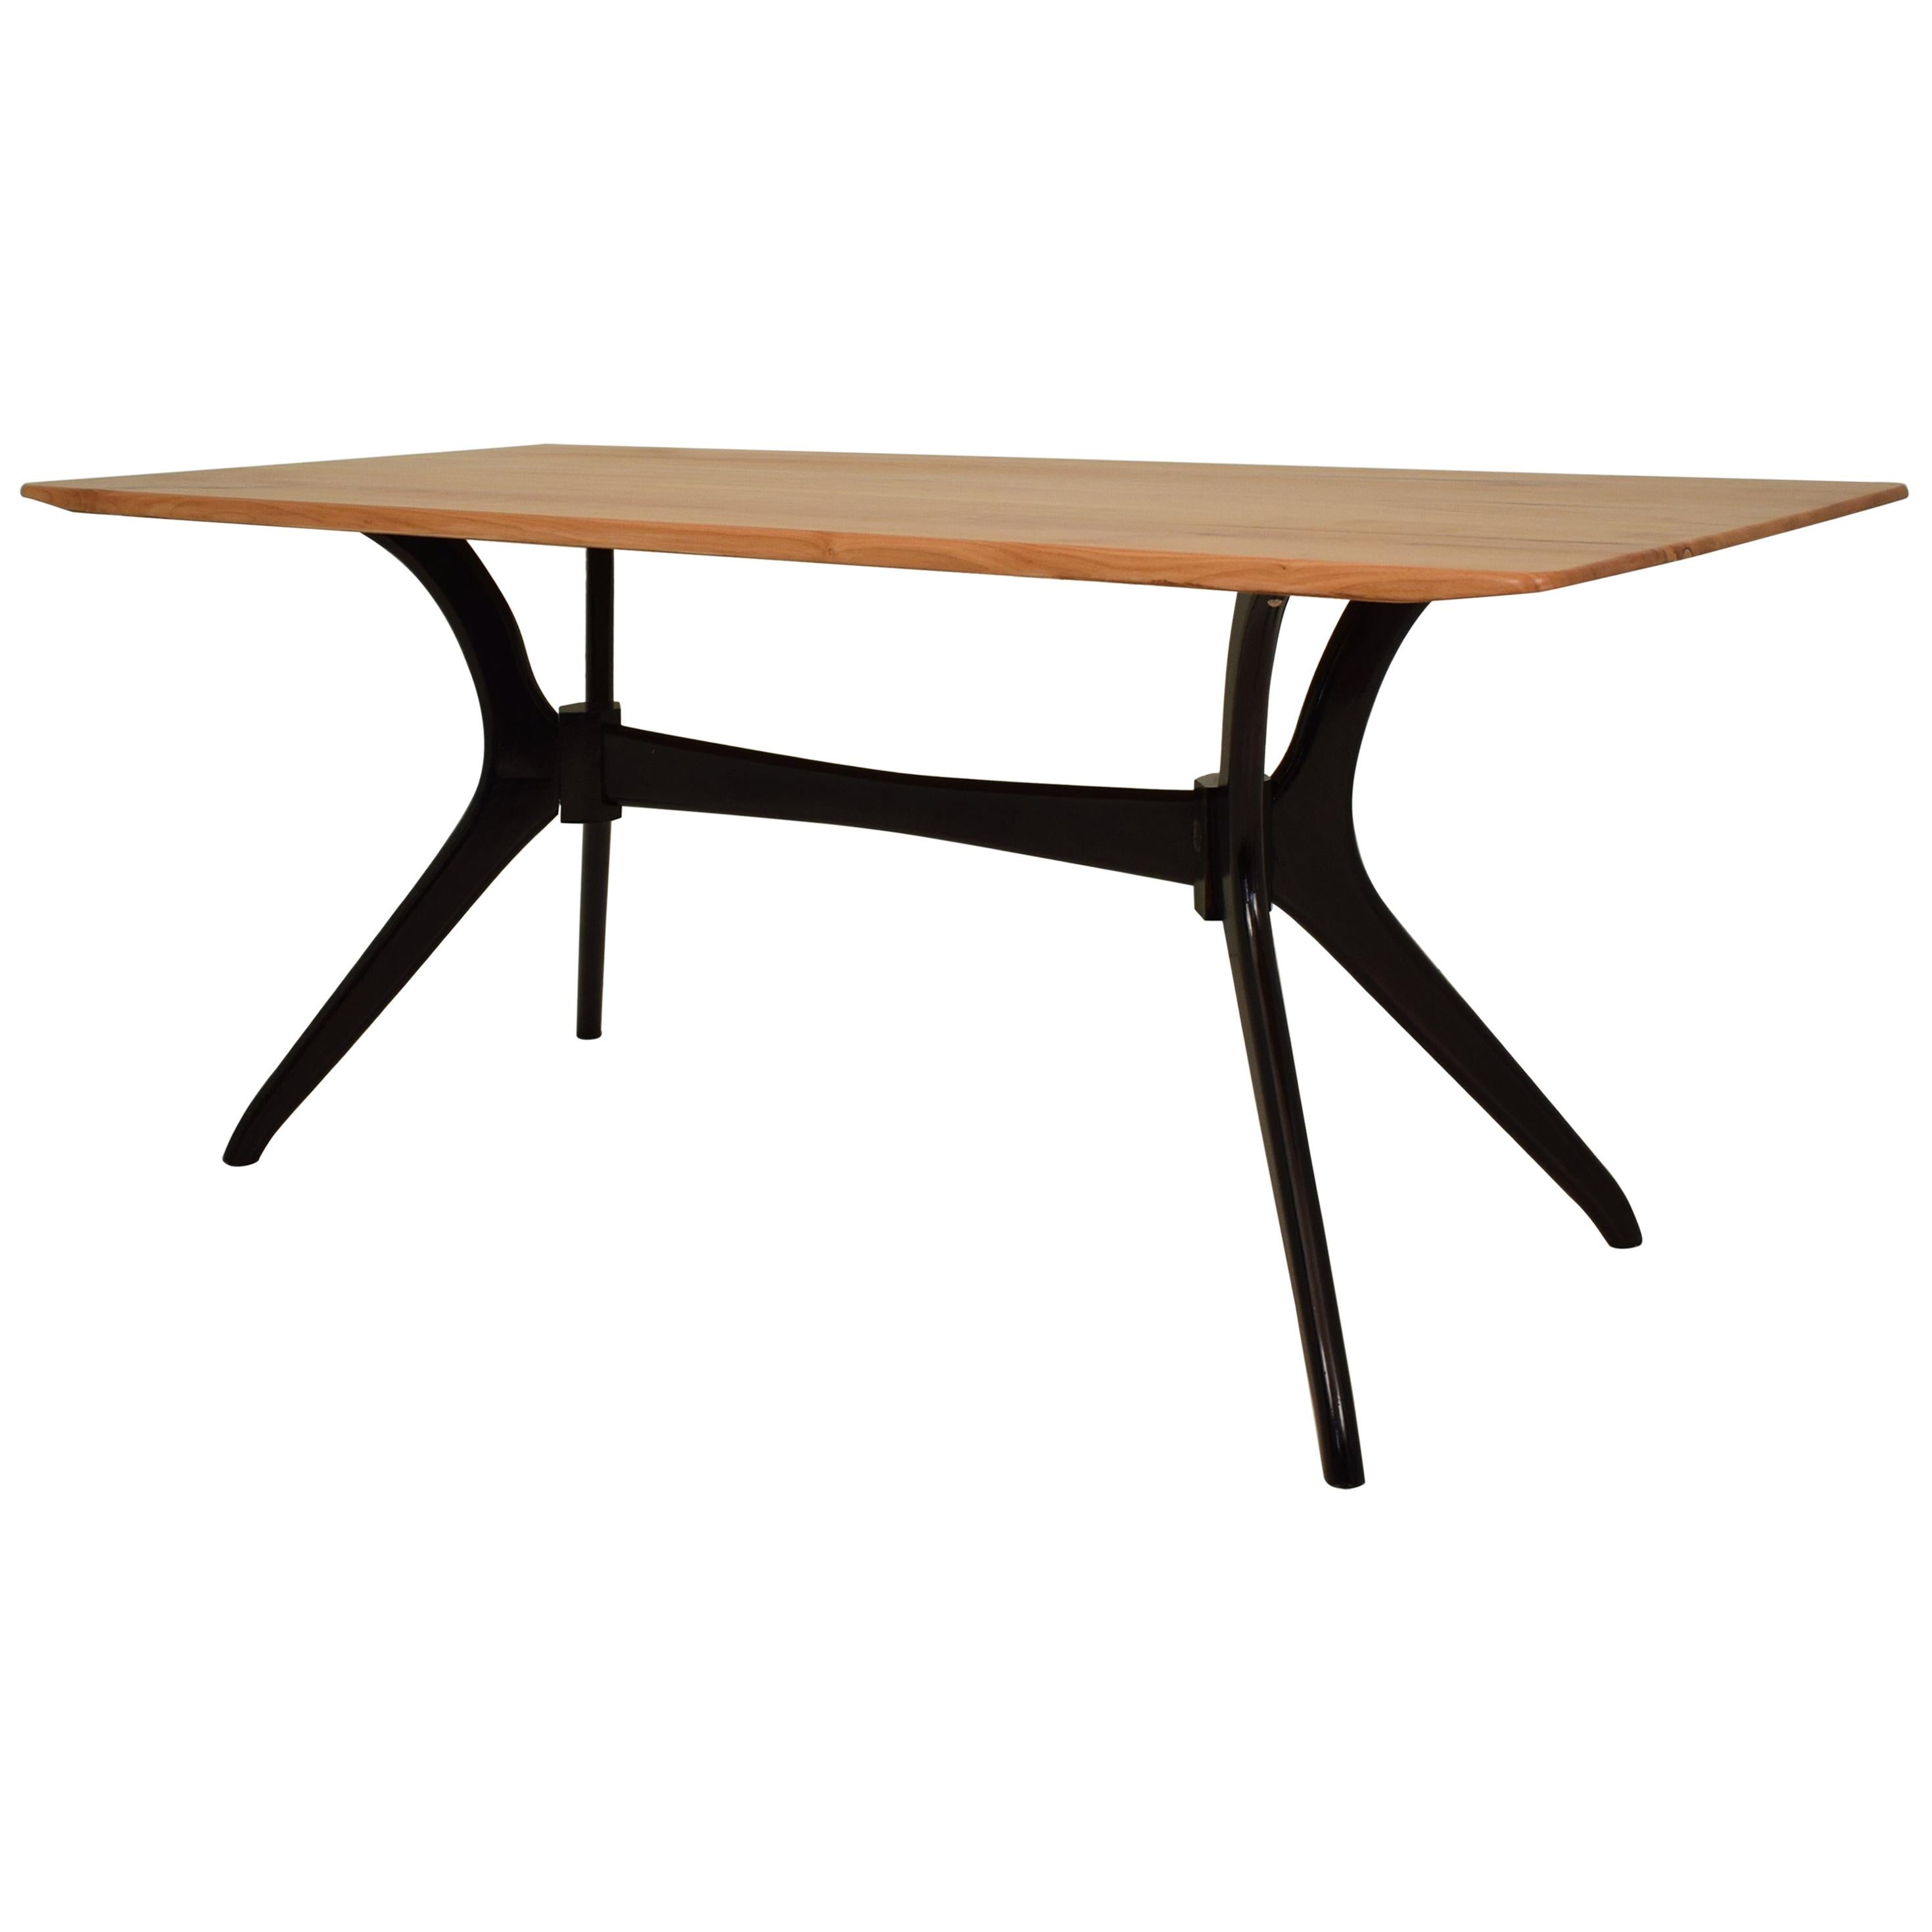 Midcentury Italian Black and Cherrywood Dining Table Style of Ico Parisi